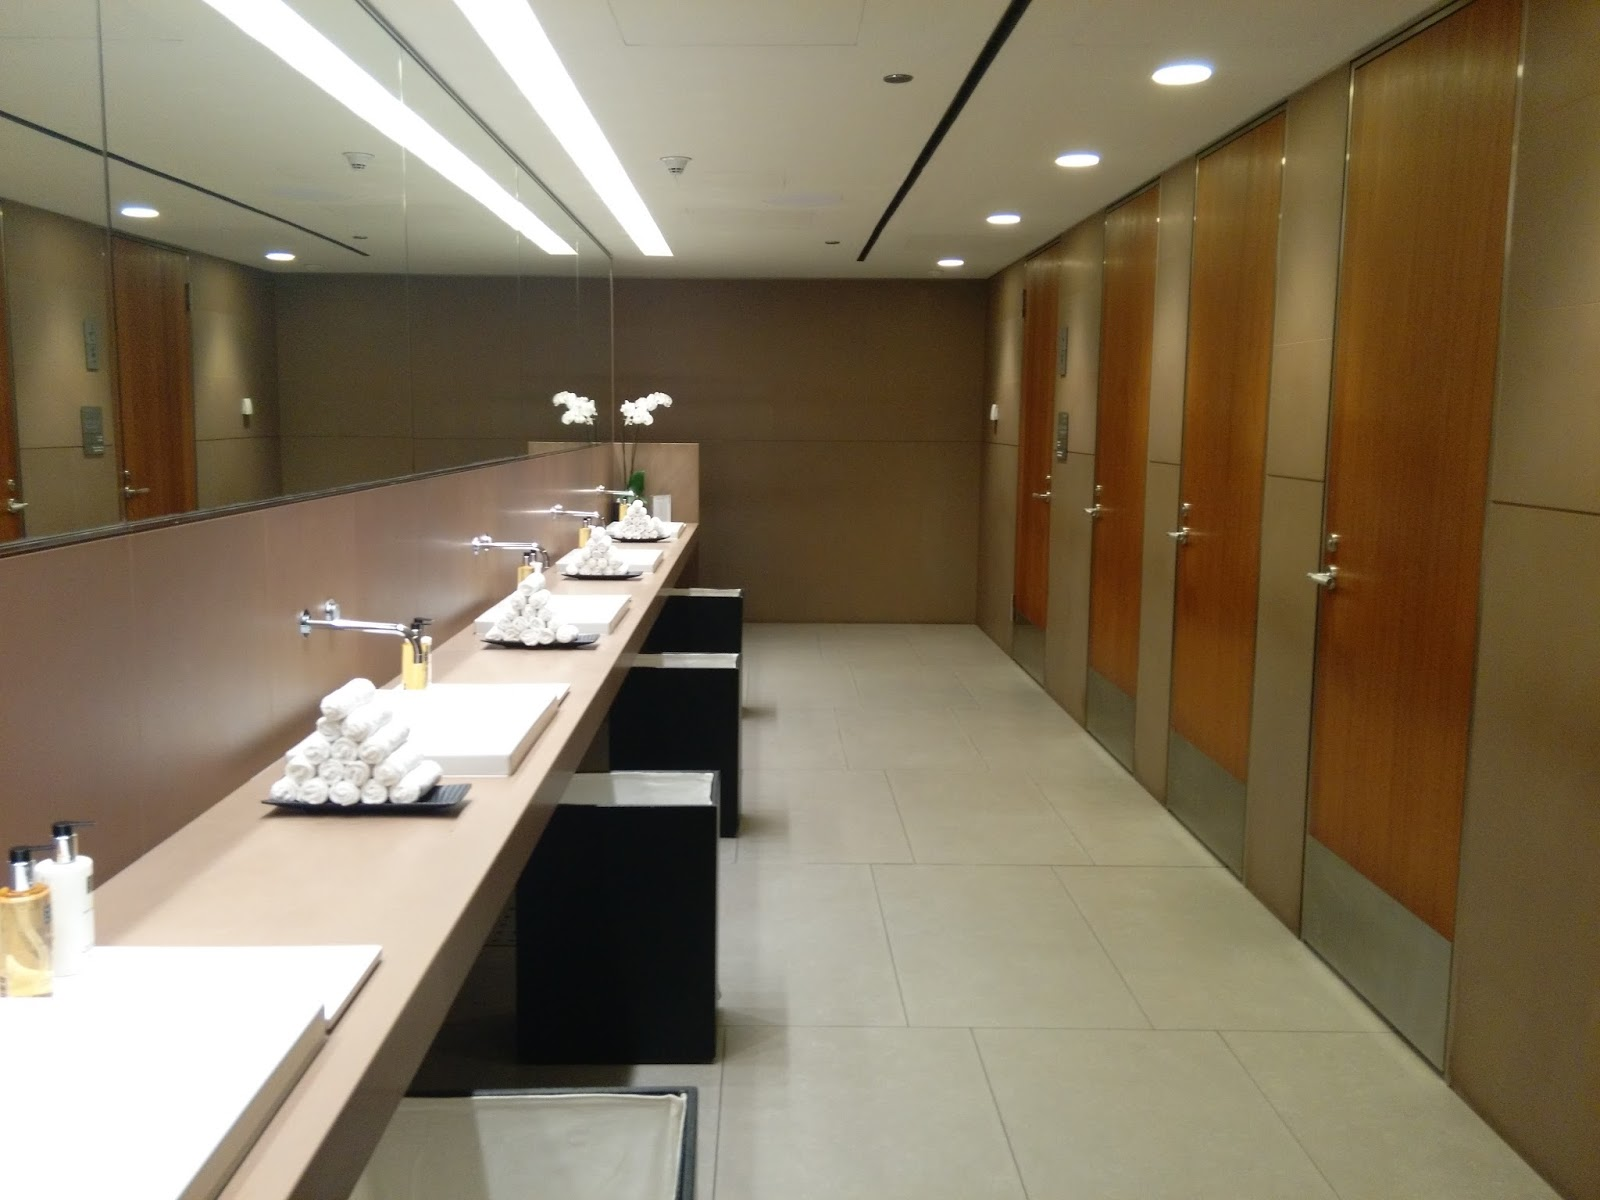 Restrooms and bathrooms in Qatar  Web Search